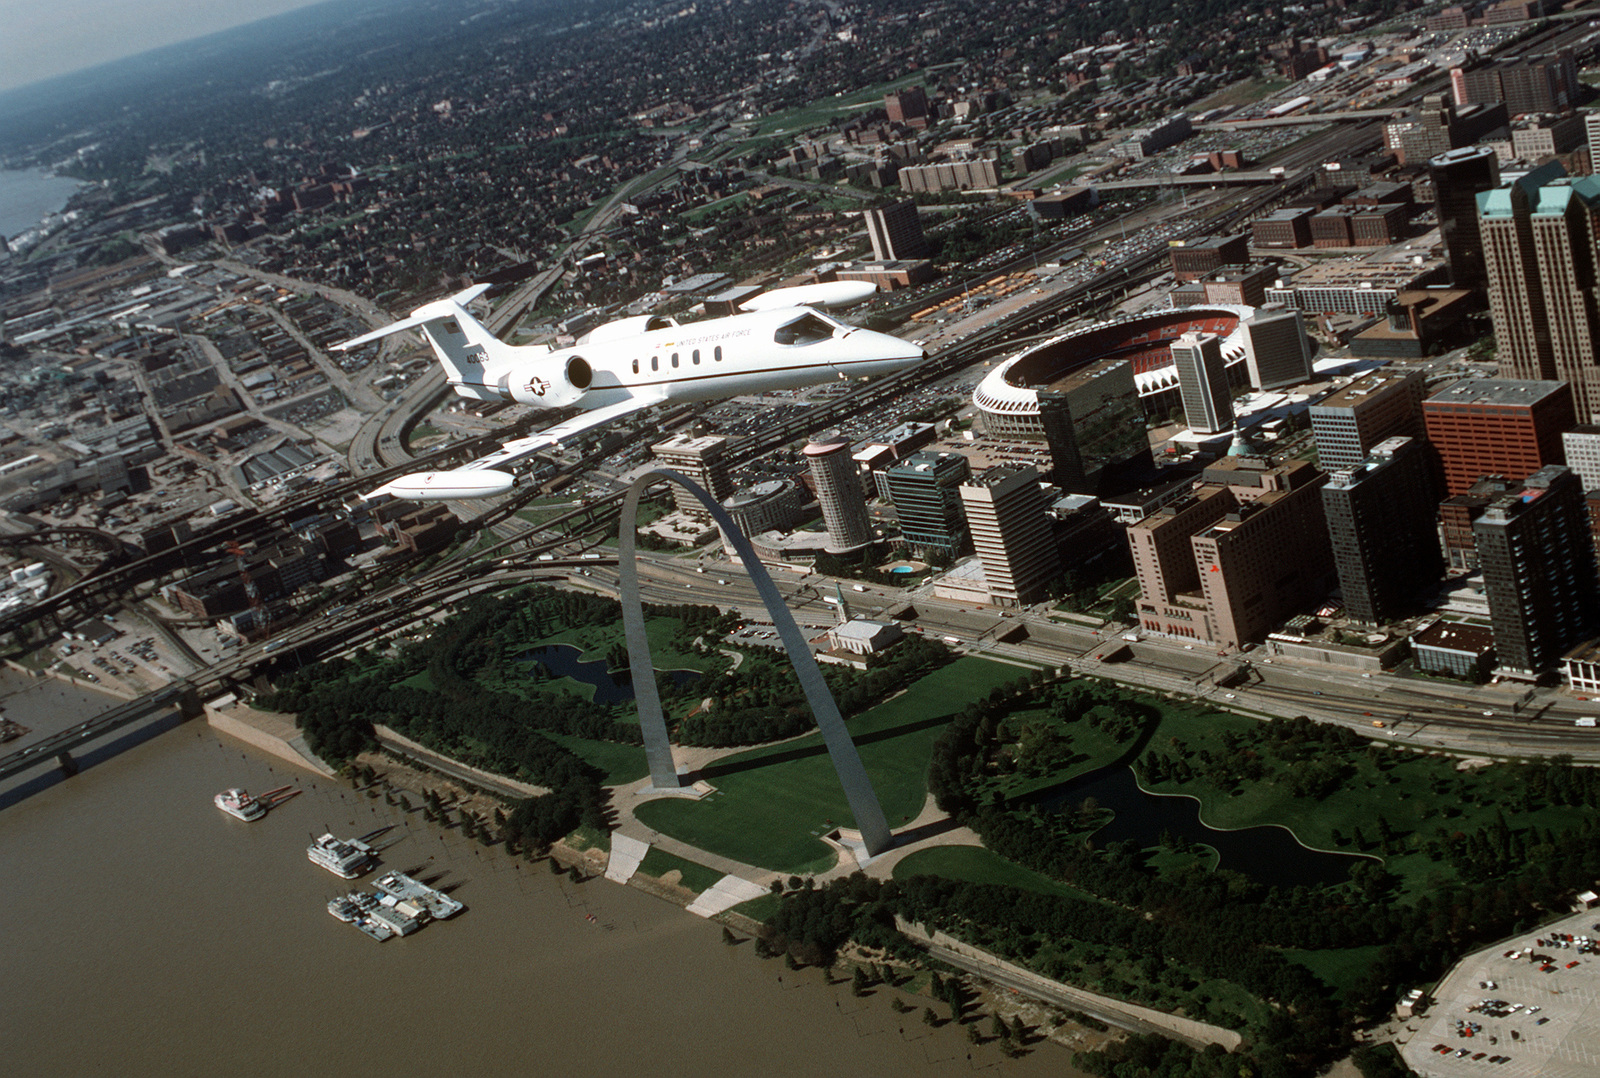 An air-to-air, three quarter front view of a Lear Jet-built C-21A aircraft during a flight over the famous St. Louis Arch, on the banks of the Mississippi River, and Busch stadium. The C-21A is assigned to the 375th Airlift Wing, Air Mobility Command